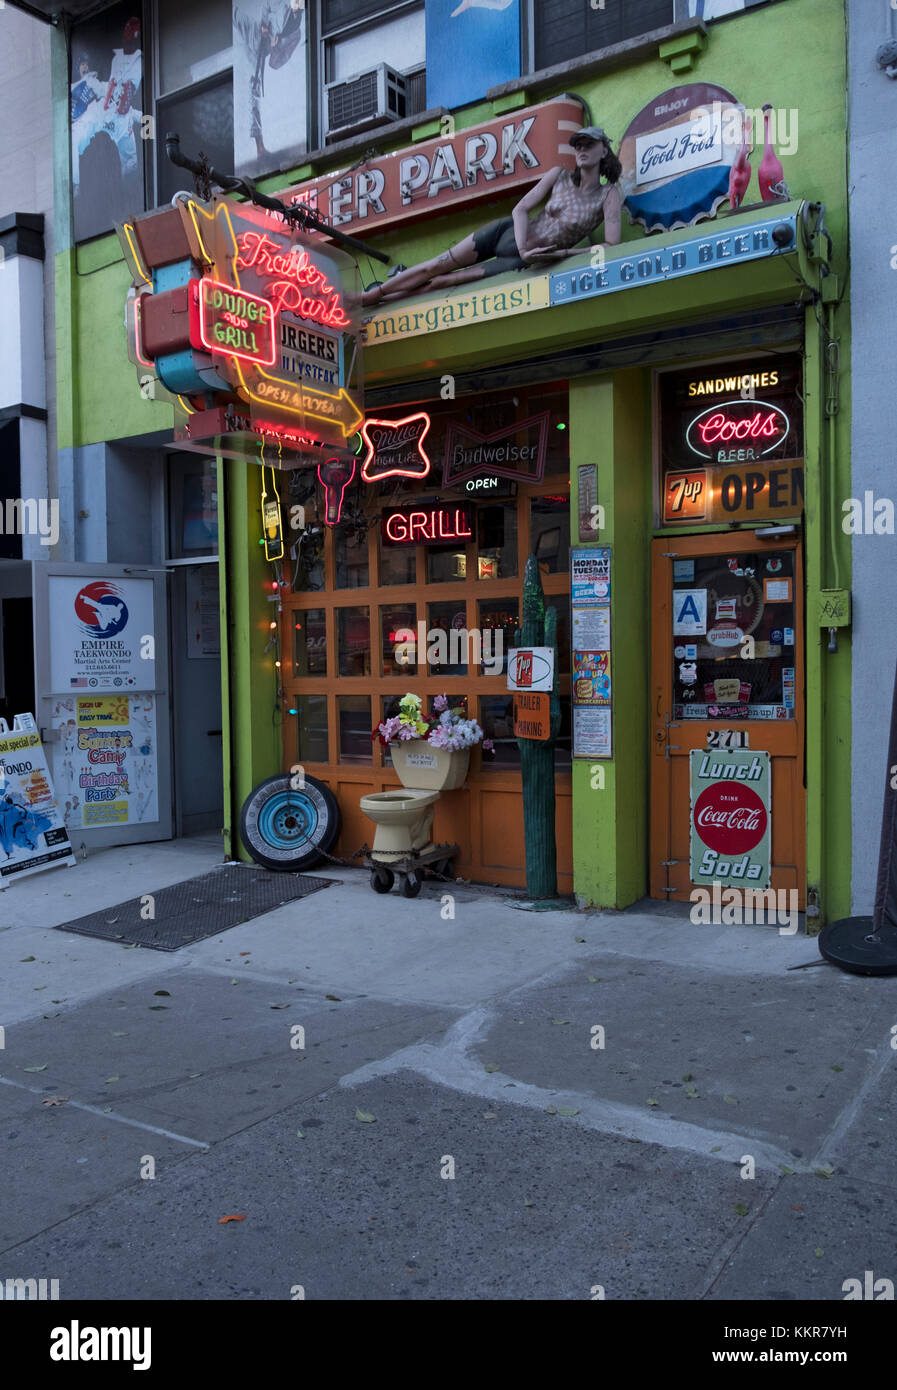 The unique and quirky exterior of The Trailer Park Lounge on west 23rd Street in Chelsea, Manhattan, New York City. Stock Photo